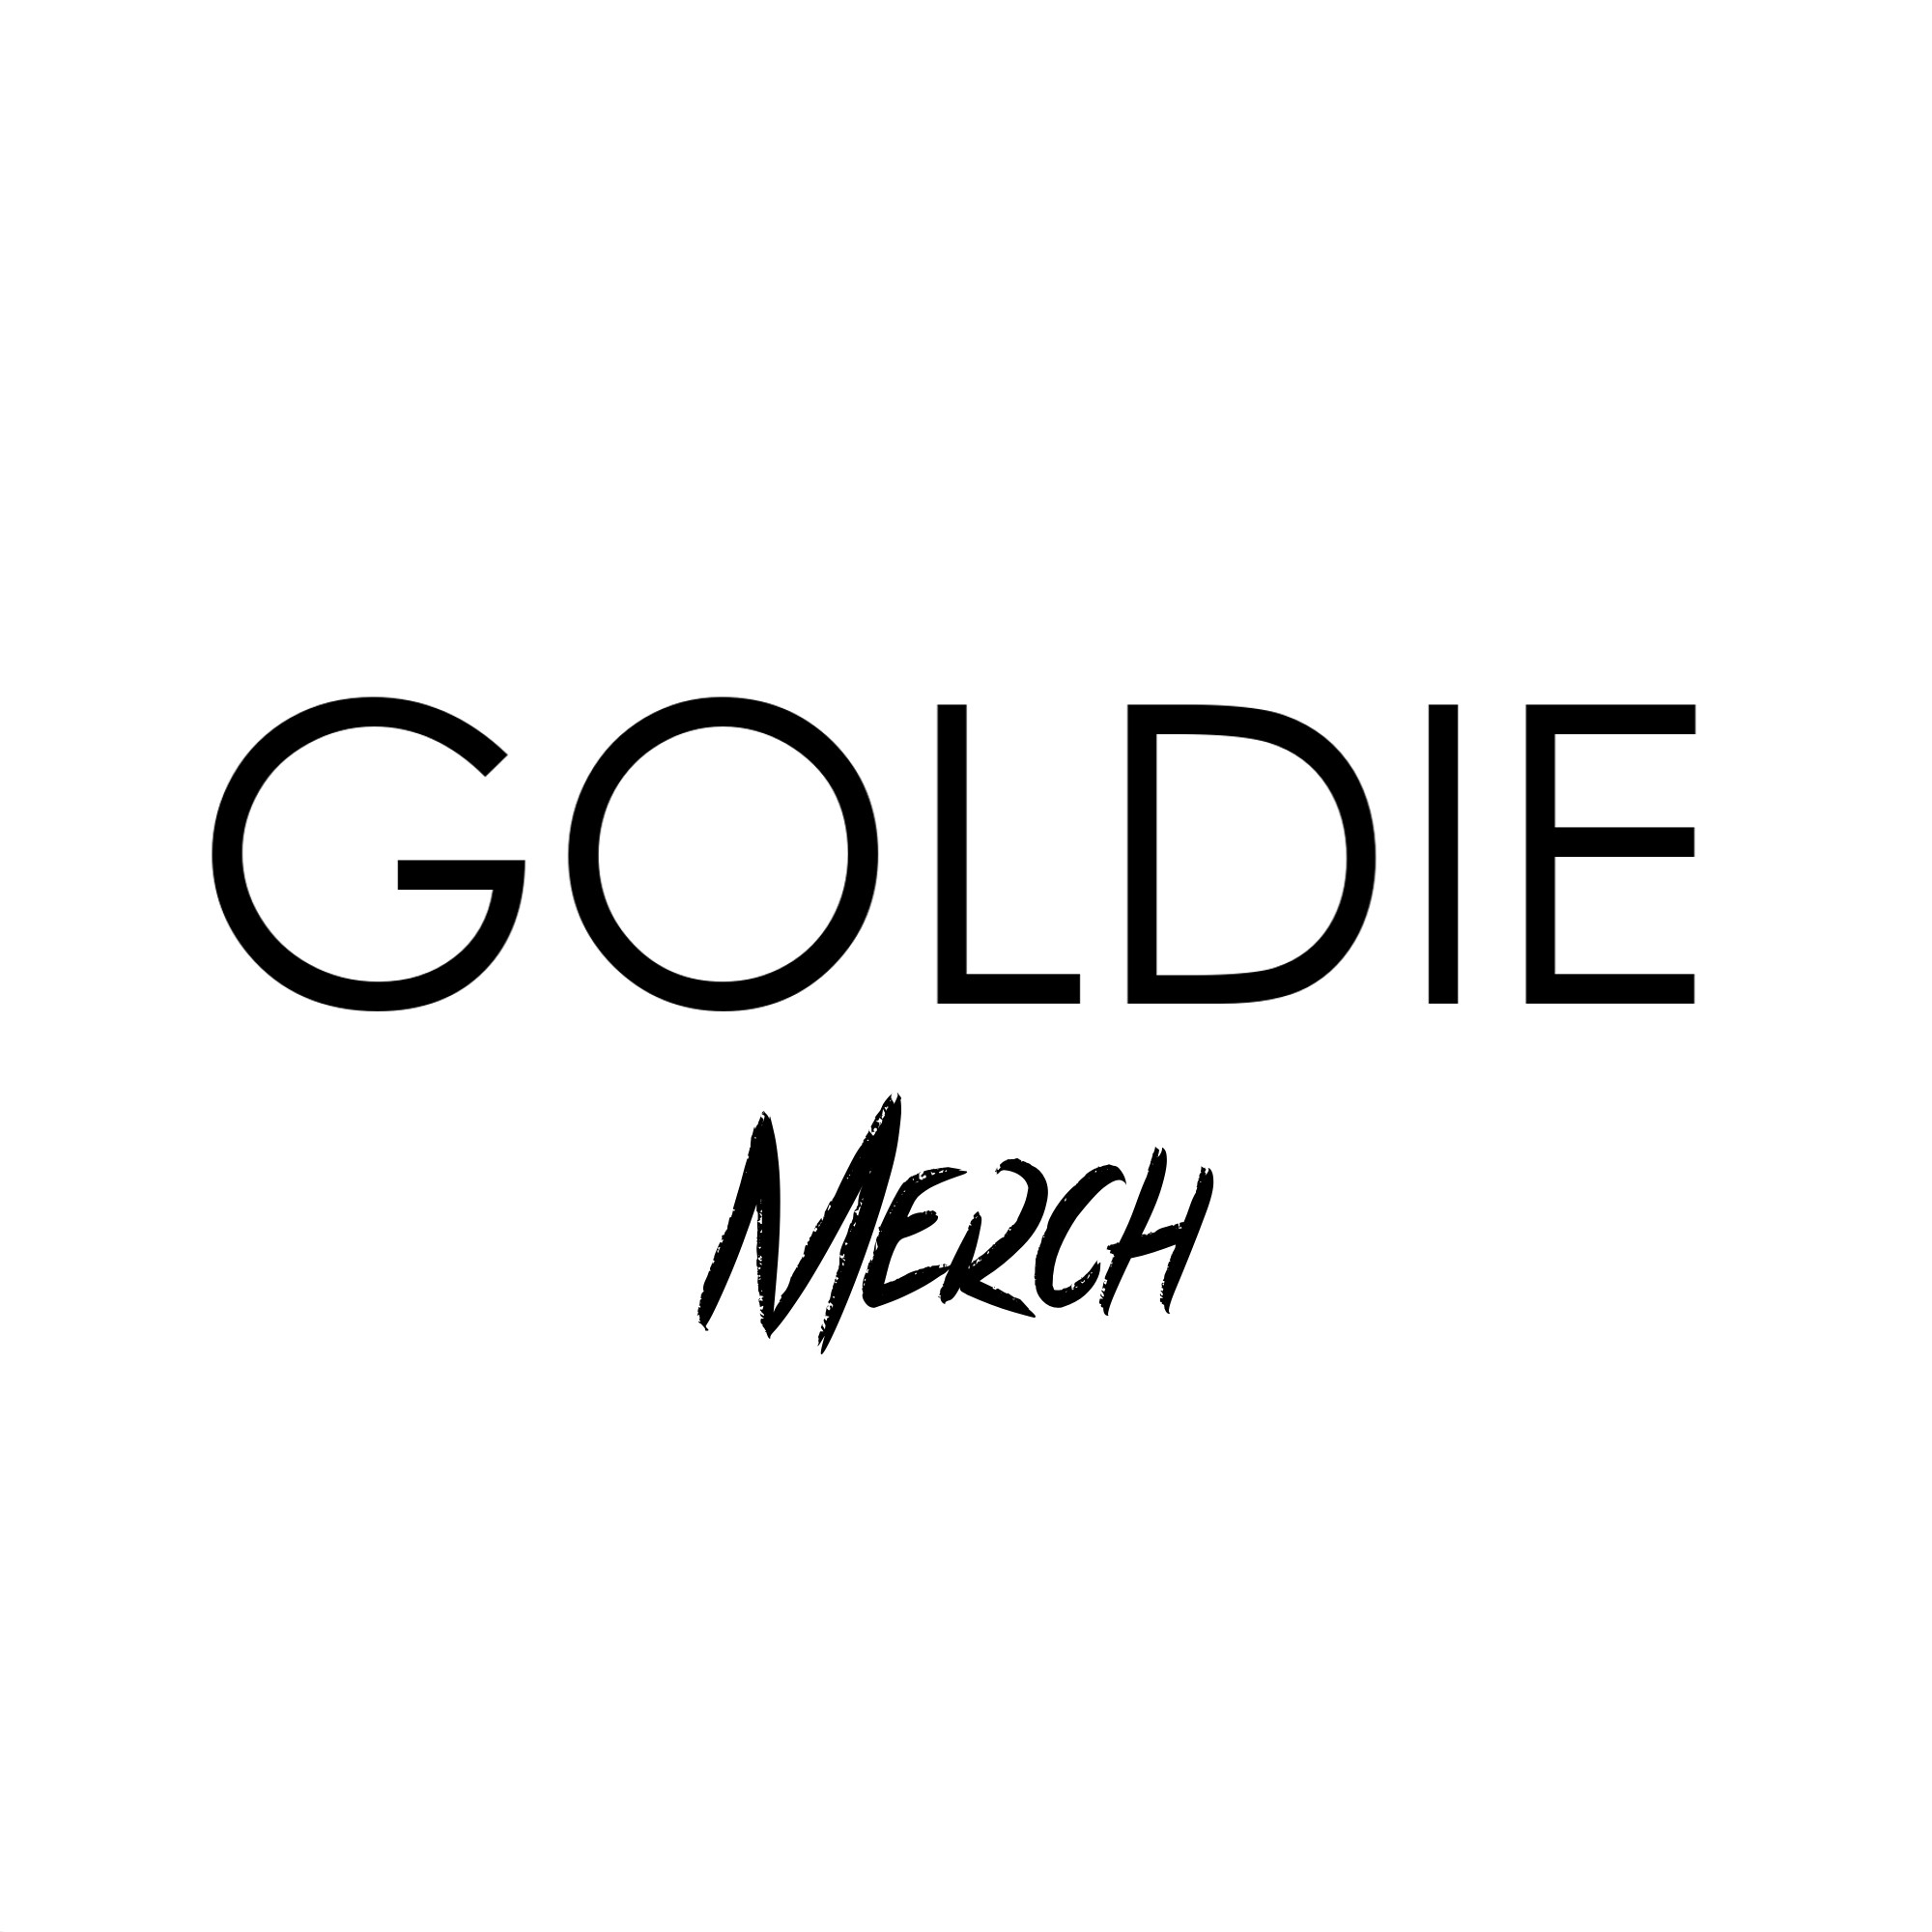 Goldie Merch